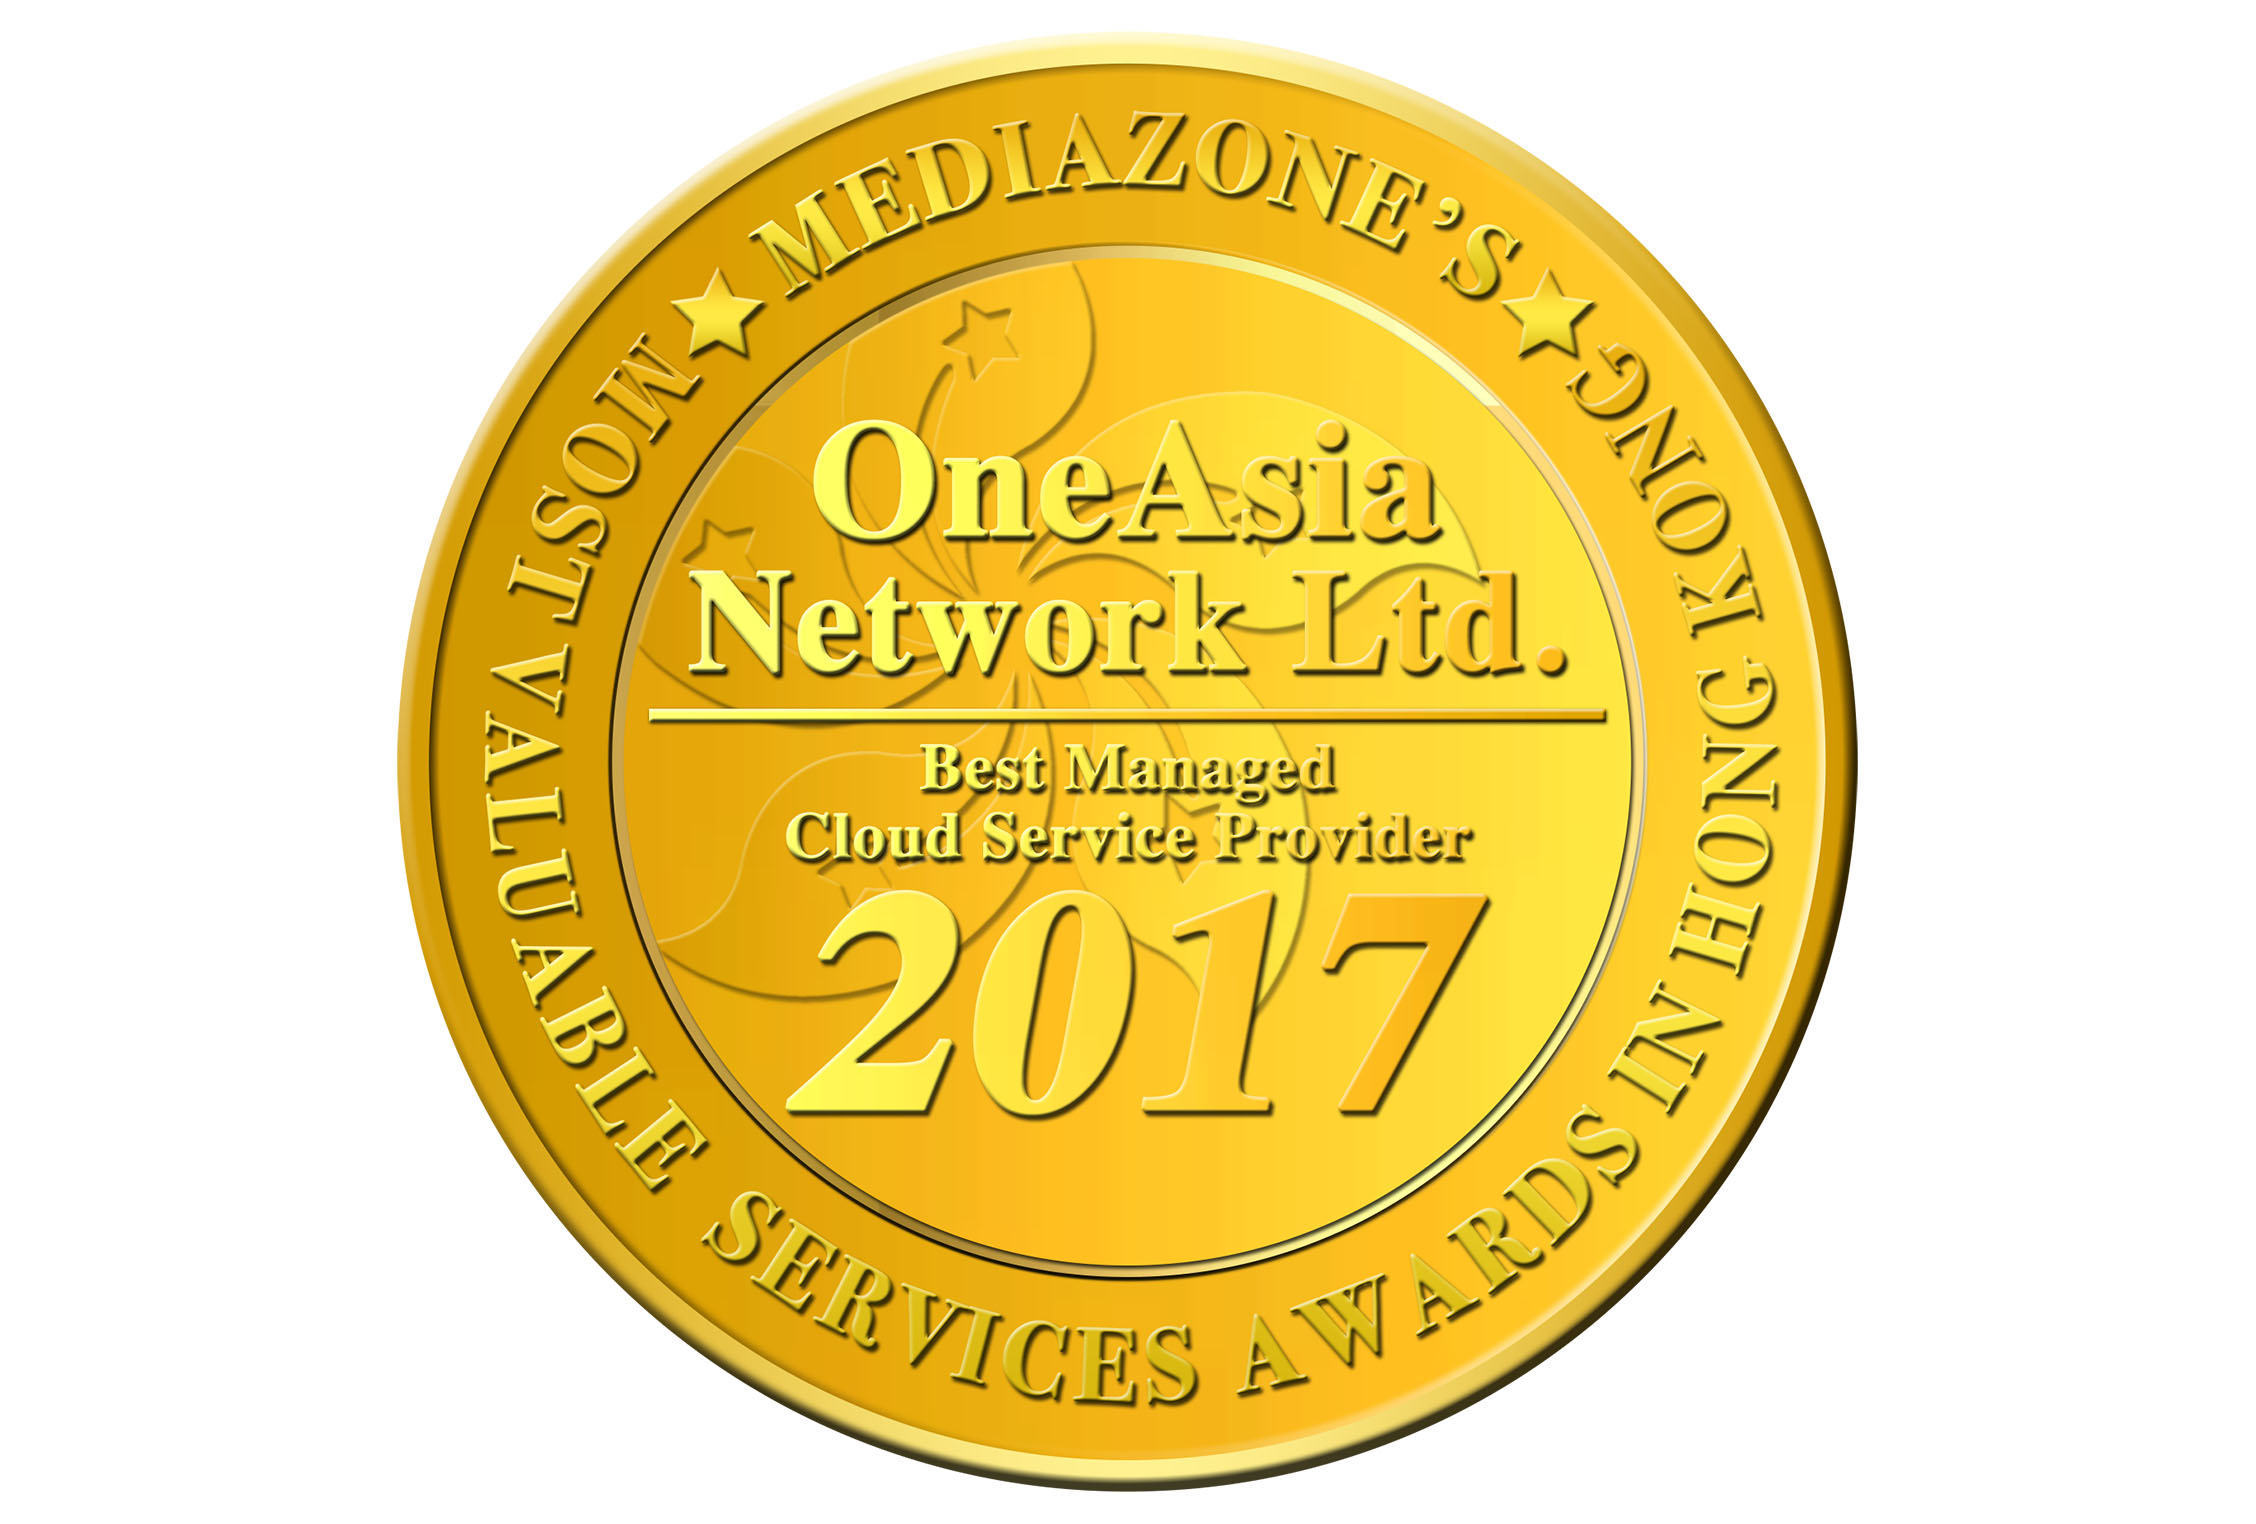 Awards certifications oneasia network limited mediazone hk most valuable services awards best managed cloud service provider 2017 xflitez Gallery